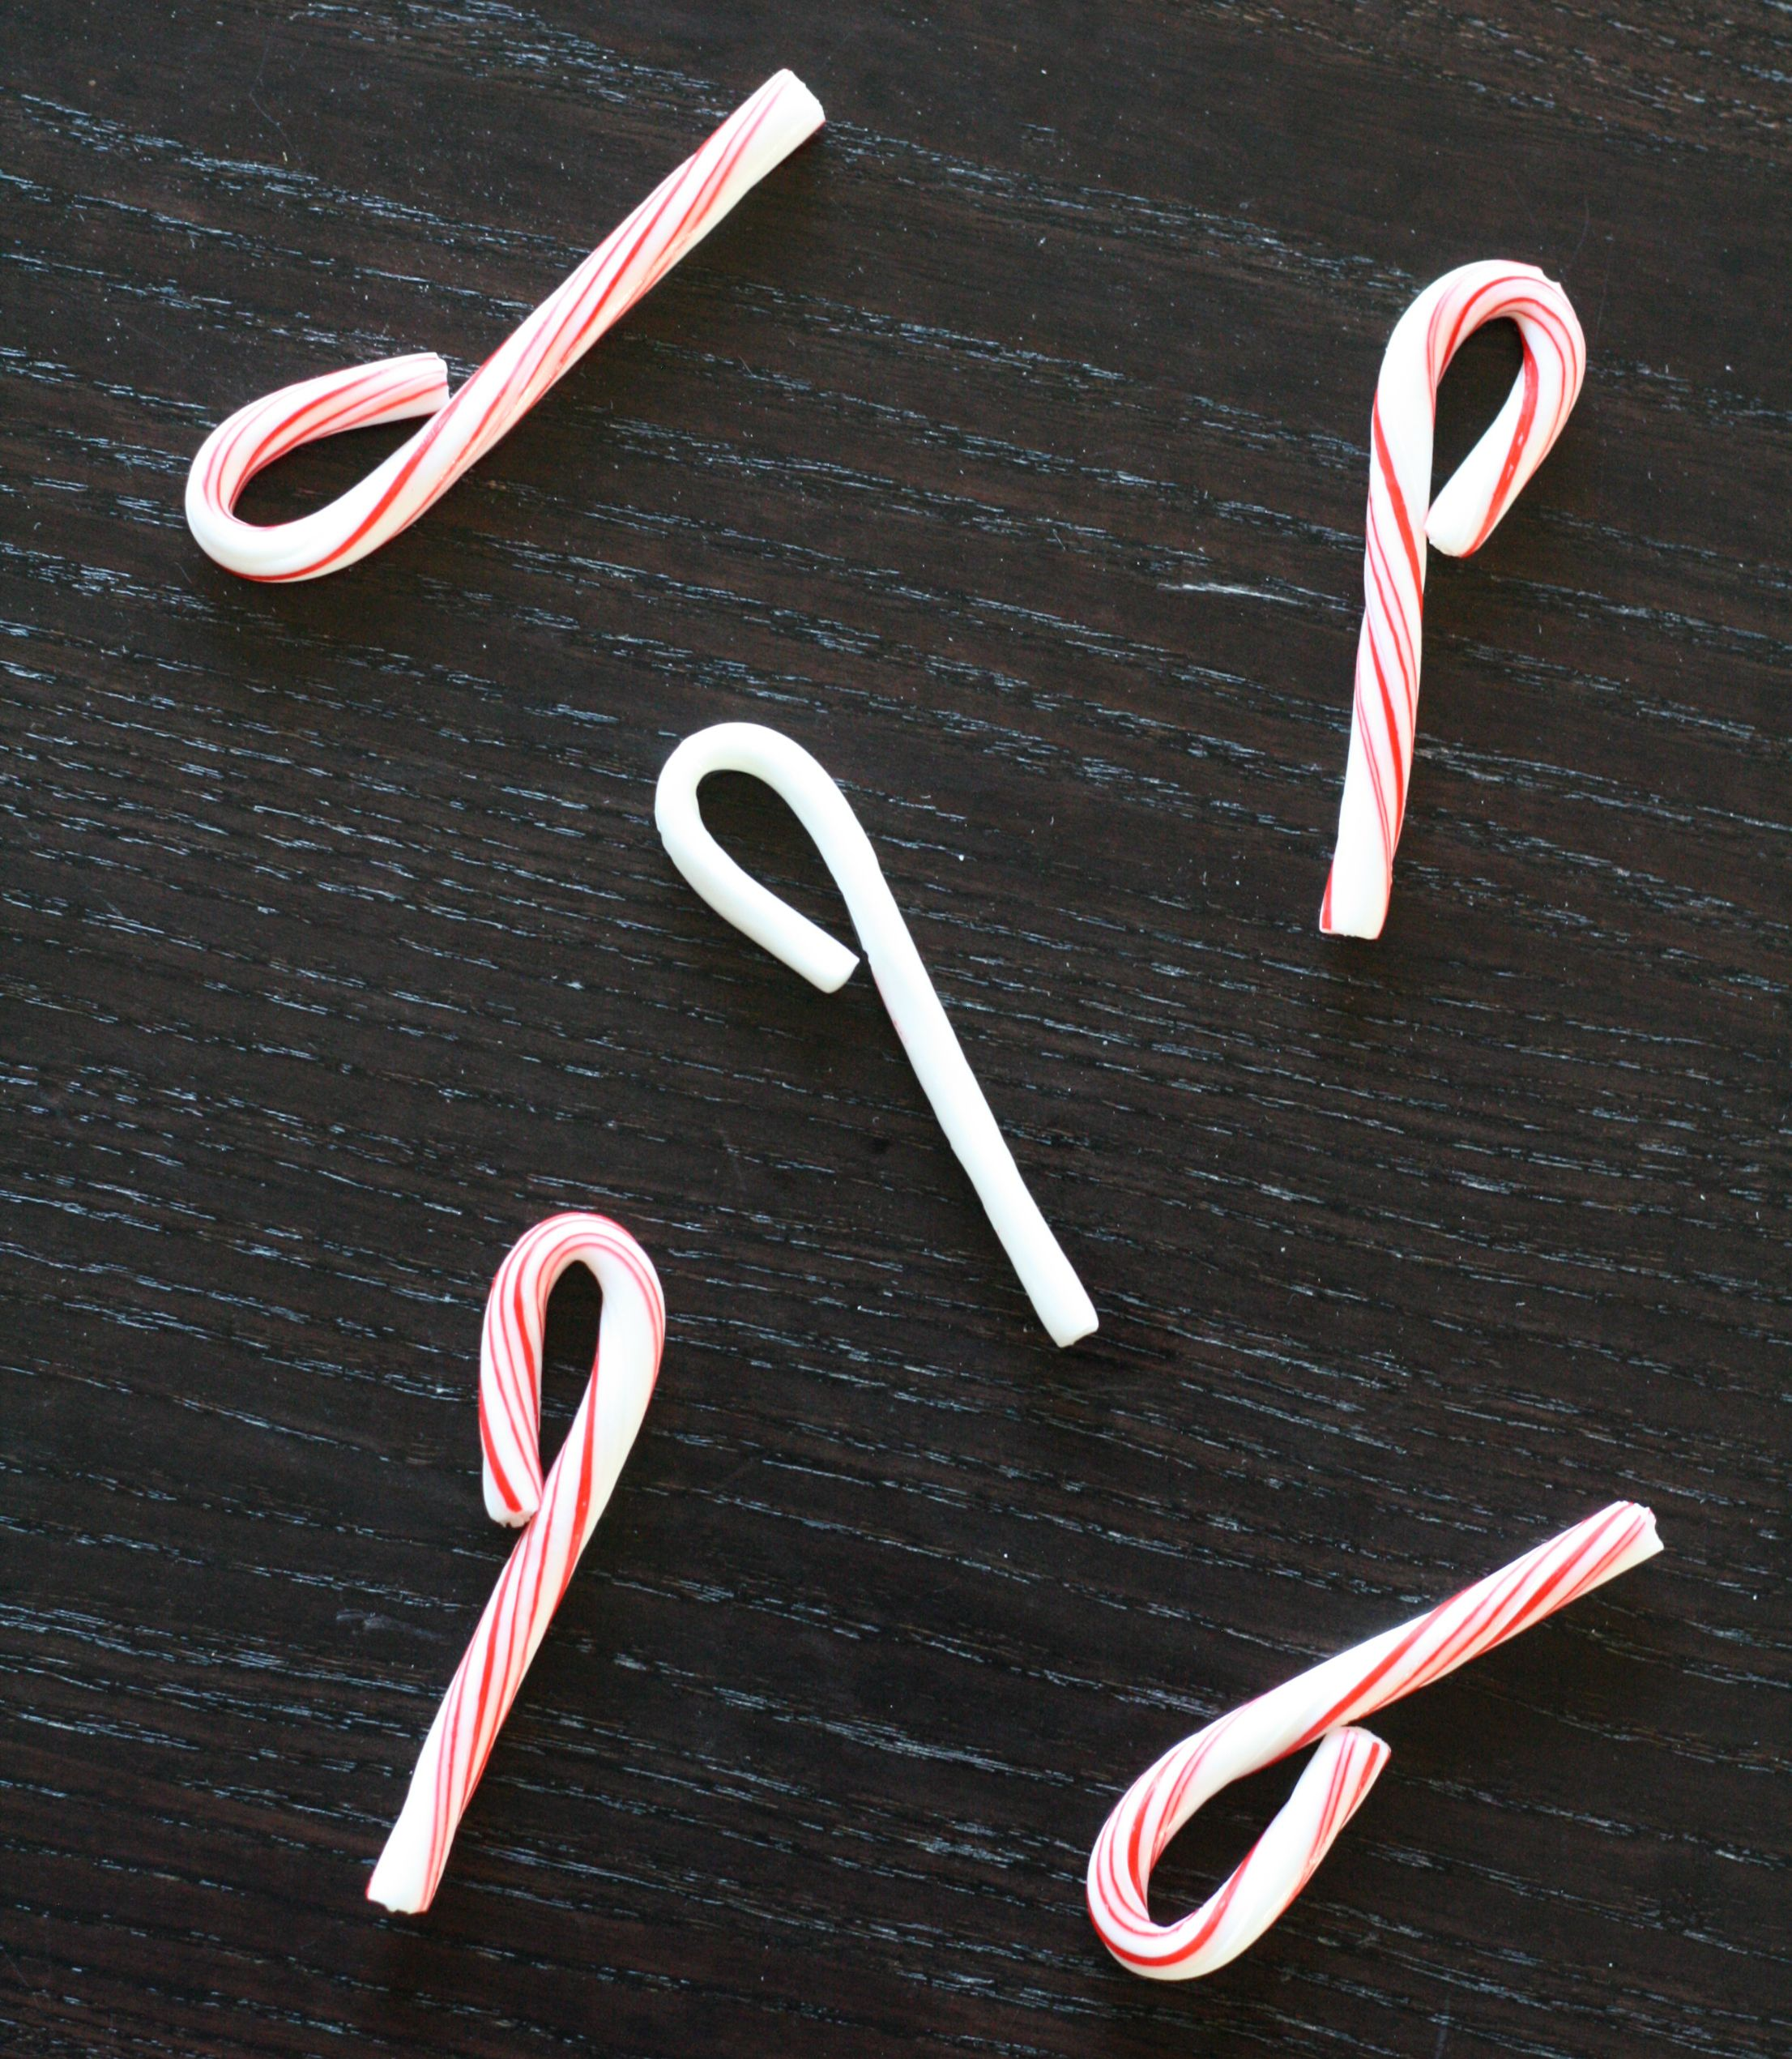 Disappearing Candy Cane Stripes